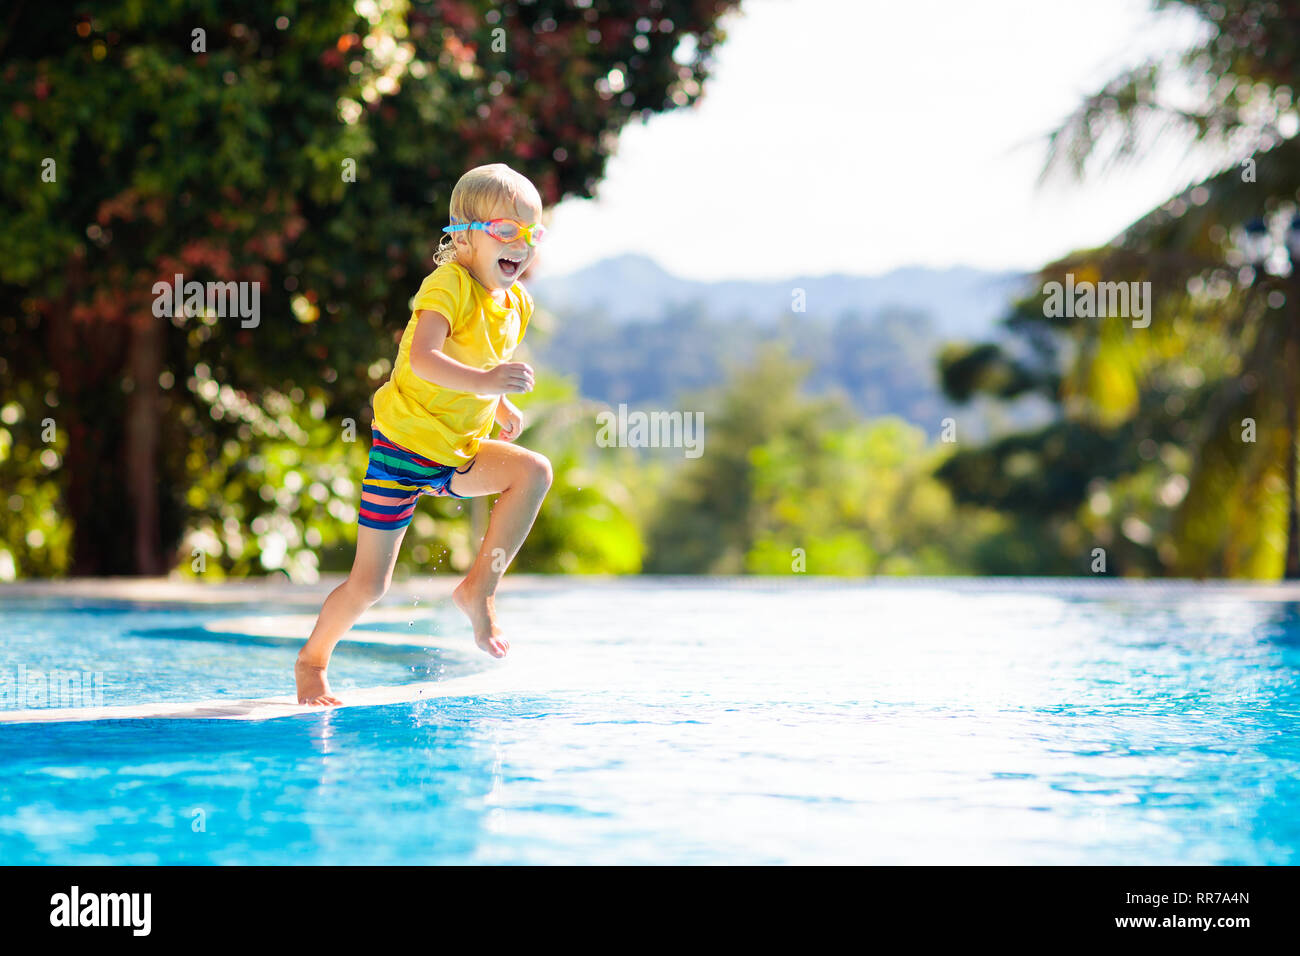 Child playing in swimming pool. Summer vacation with kids. Little boy jumping into water during exotic holiday in tropical island resort. Children swi - Stock Image